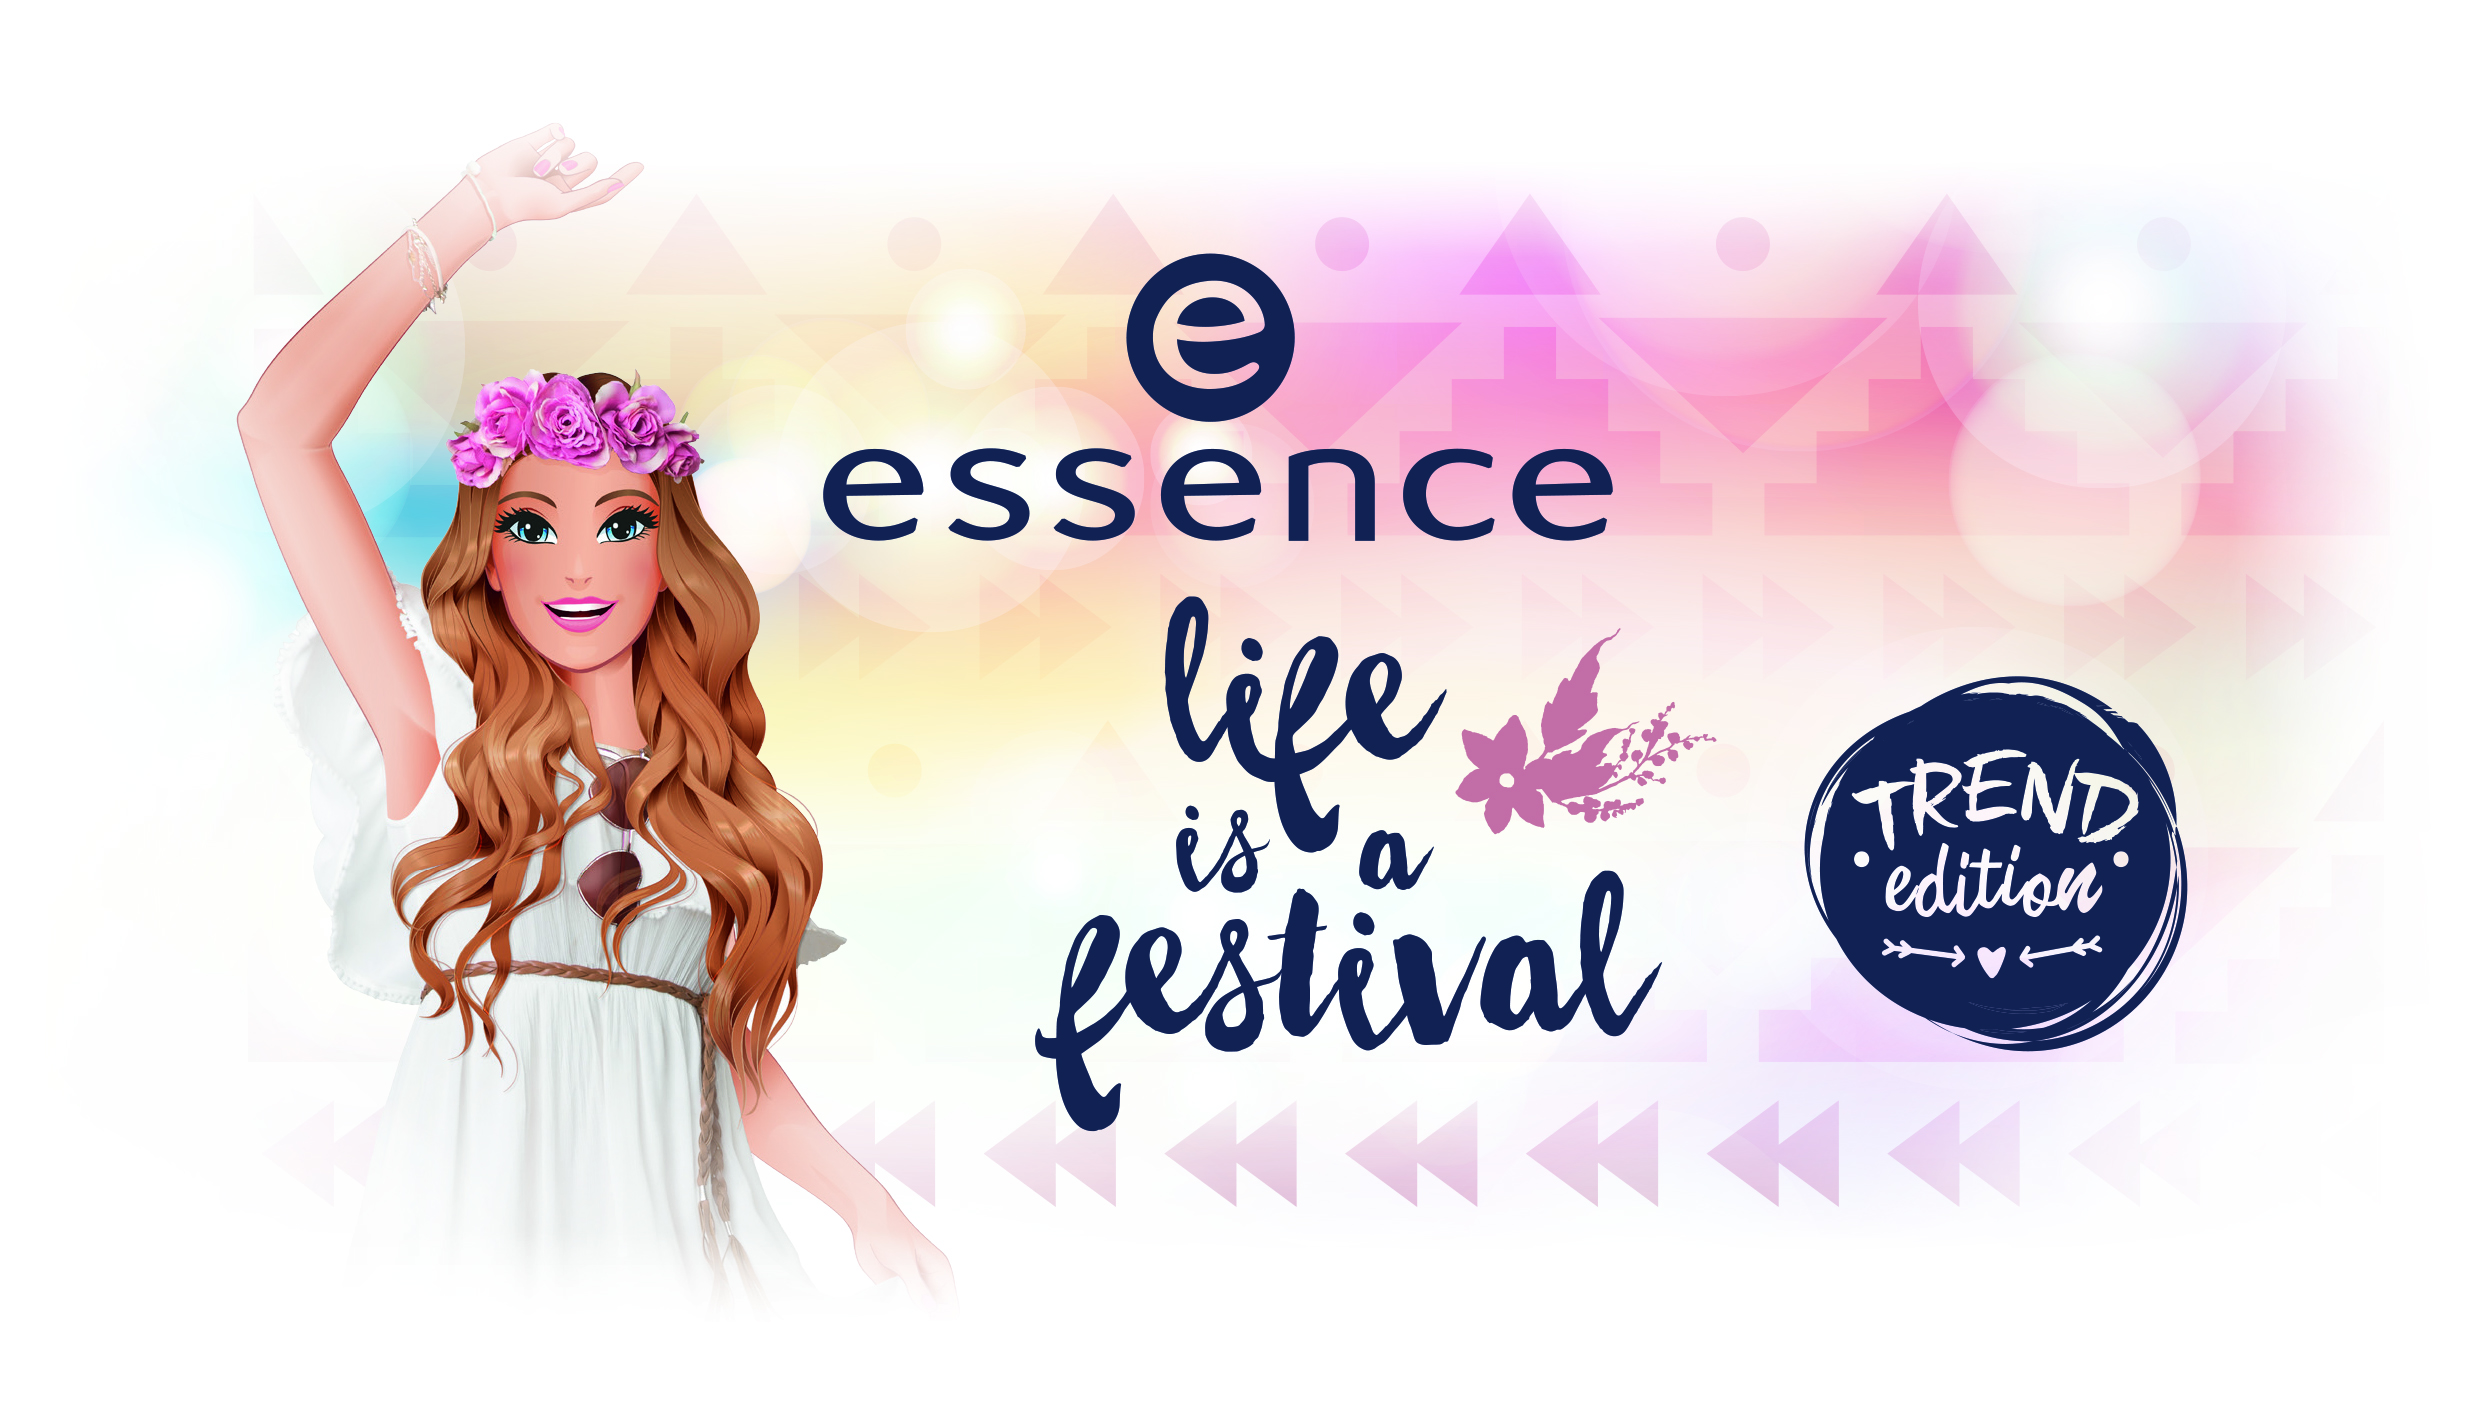 essence_pm_life_is_a_festival_2017_header_1485446849.jpg